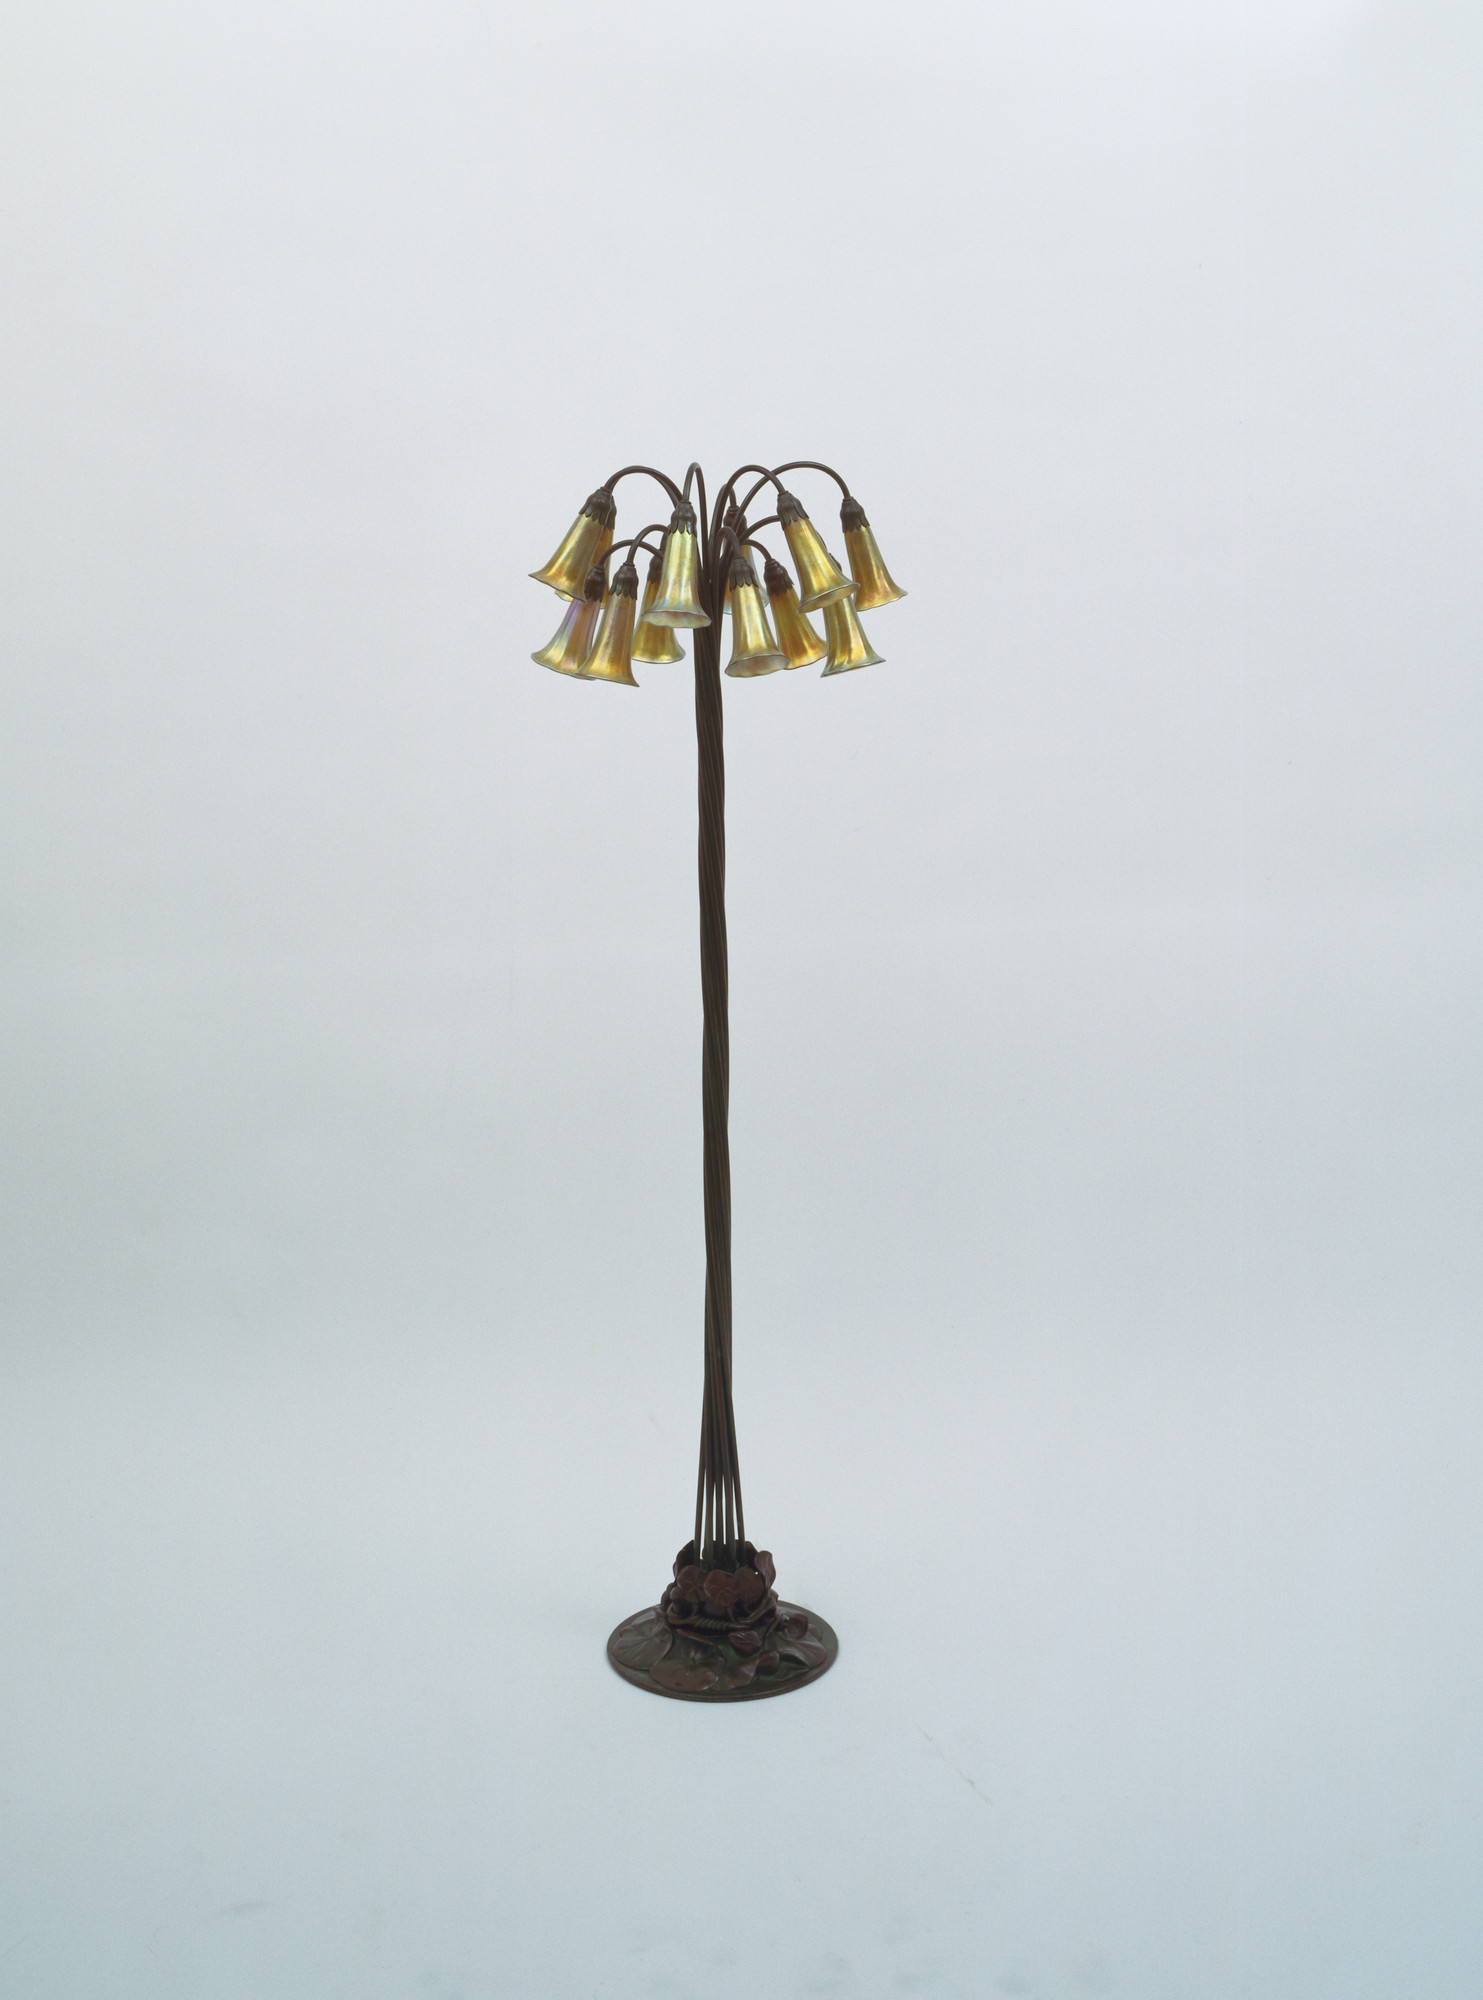 Louis Comfort Tiffany. Floor Lamp. c. 1900